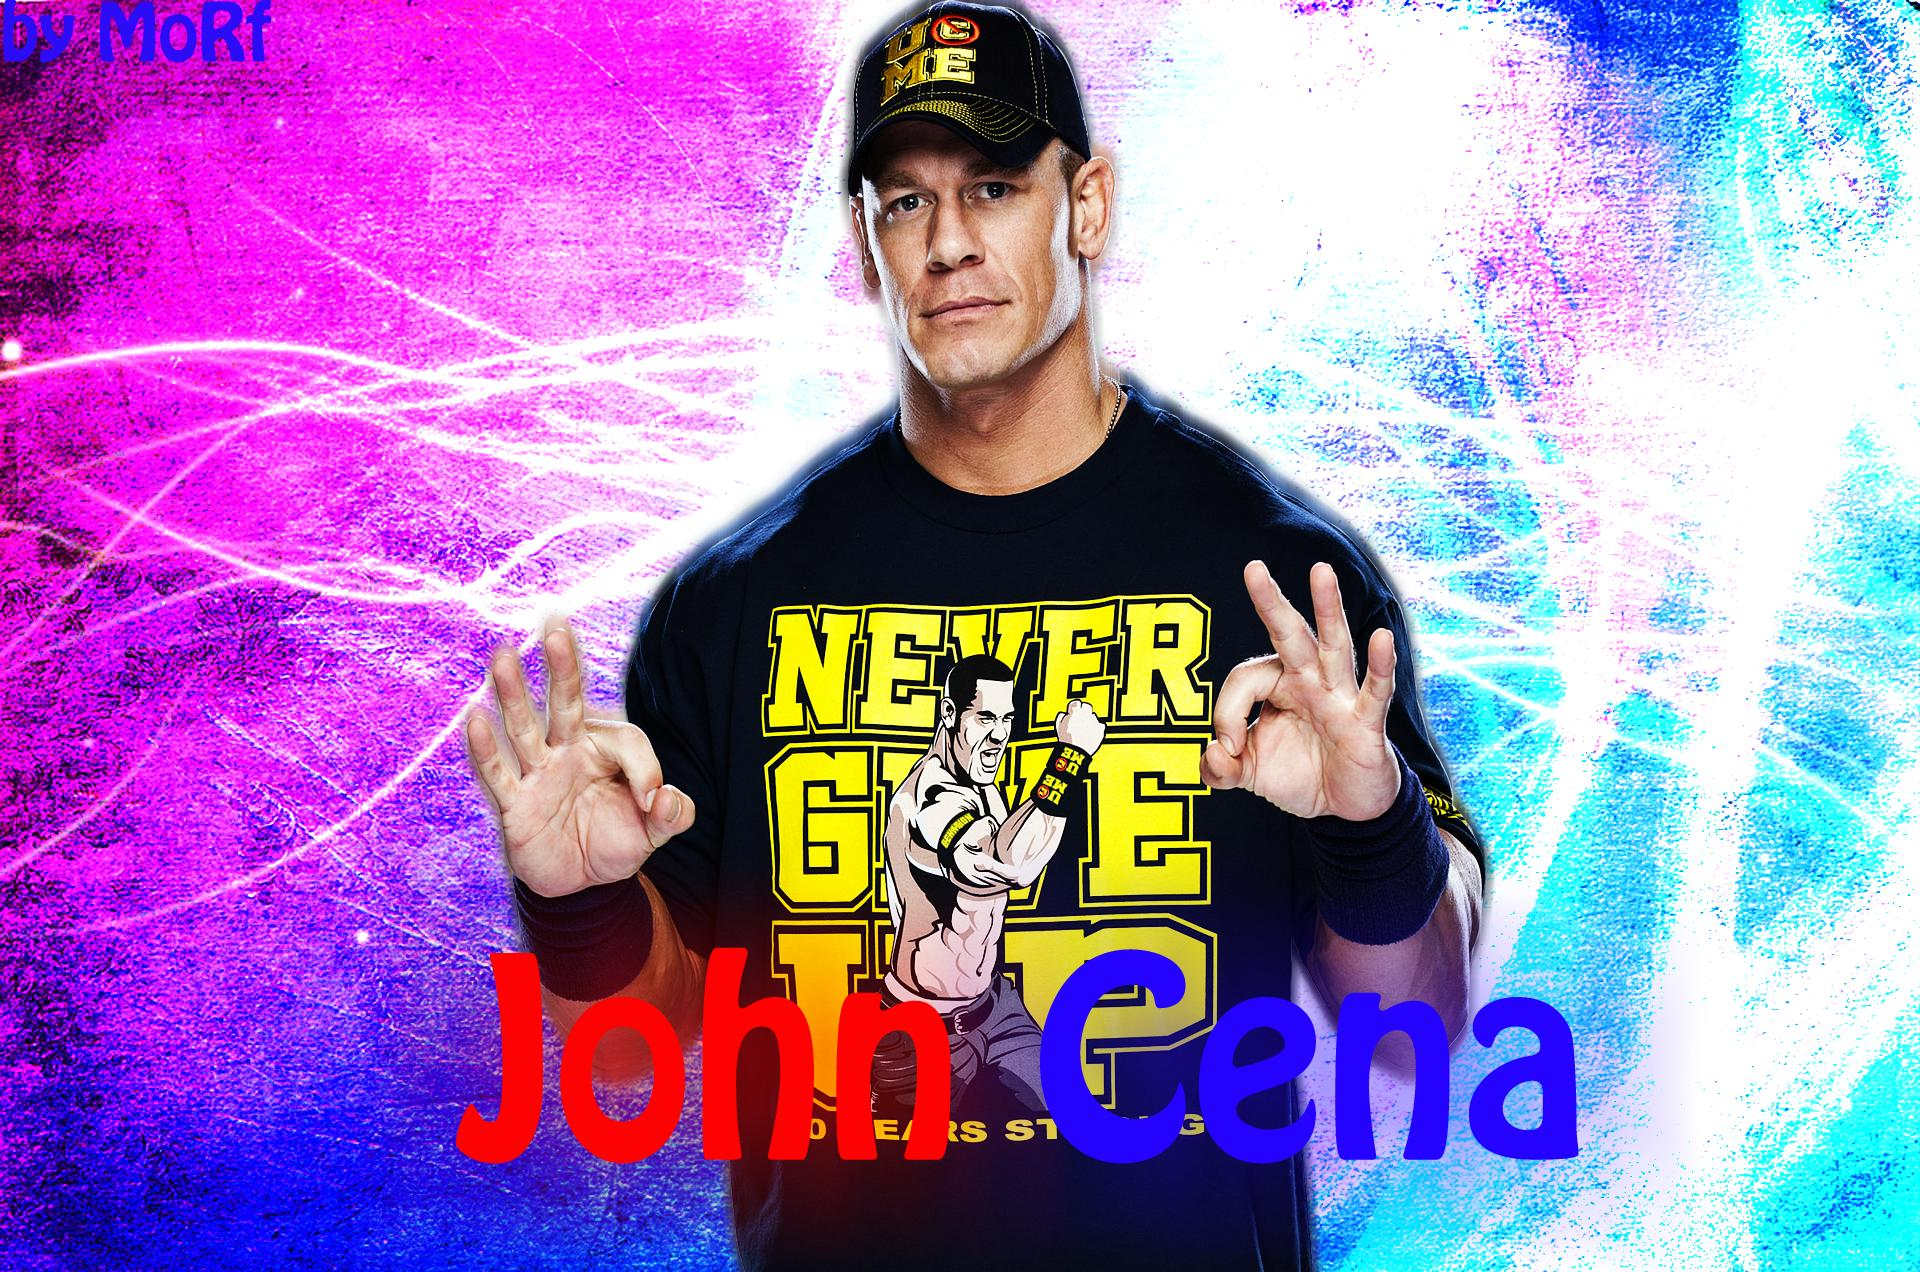 wwe images john cena wallpapers hd wallpaper and background photos